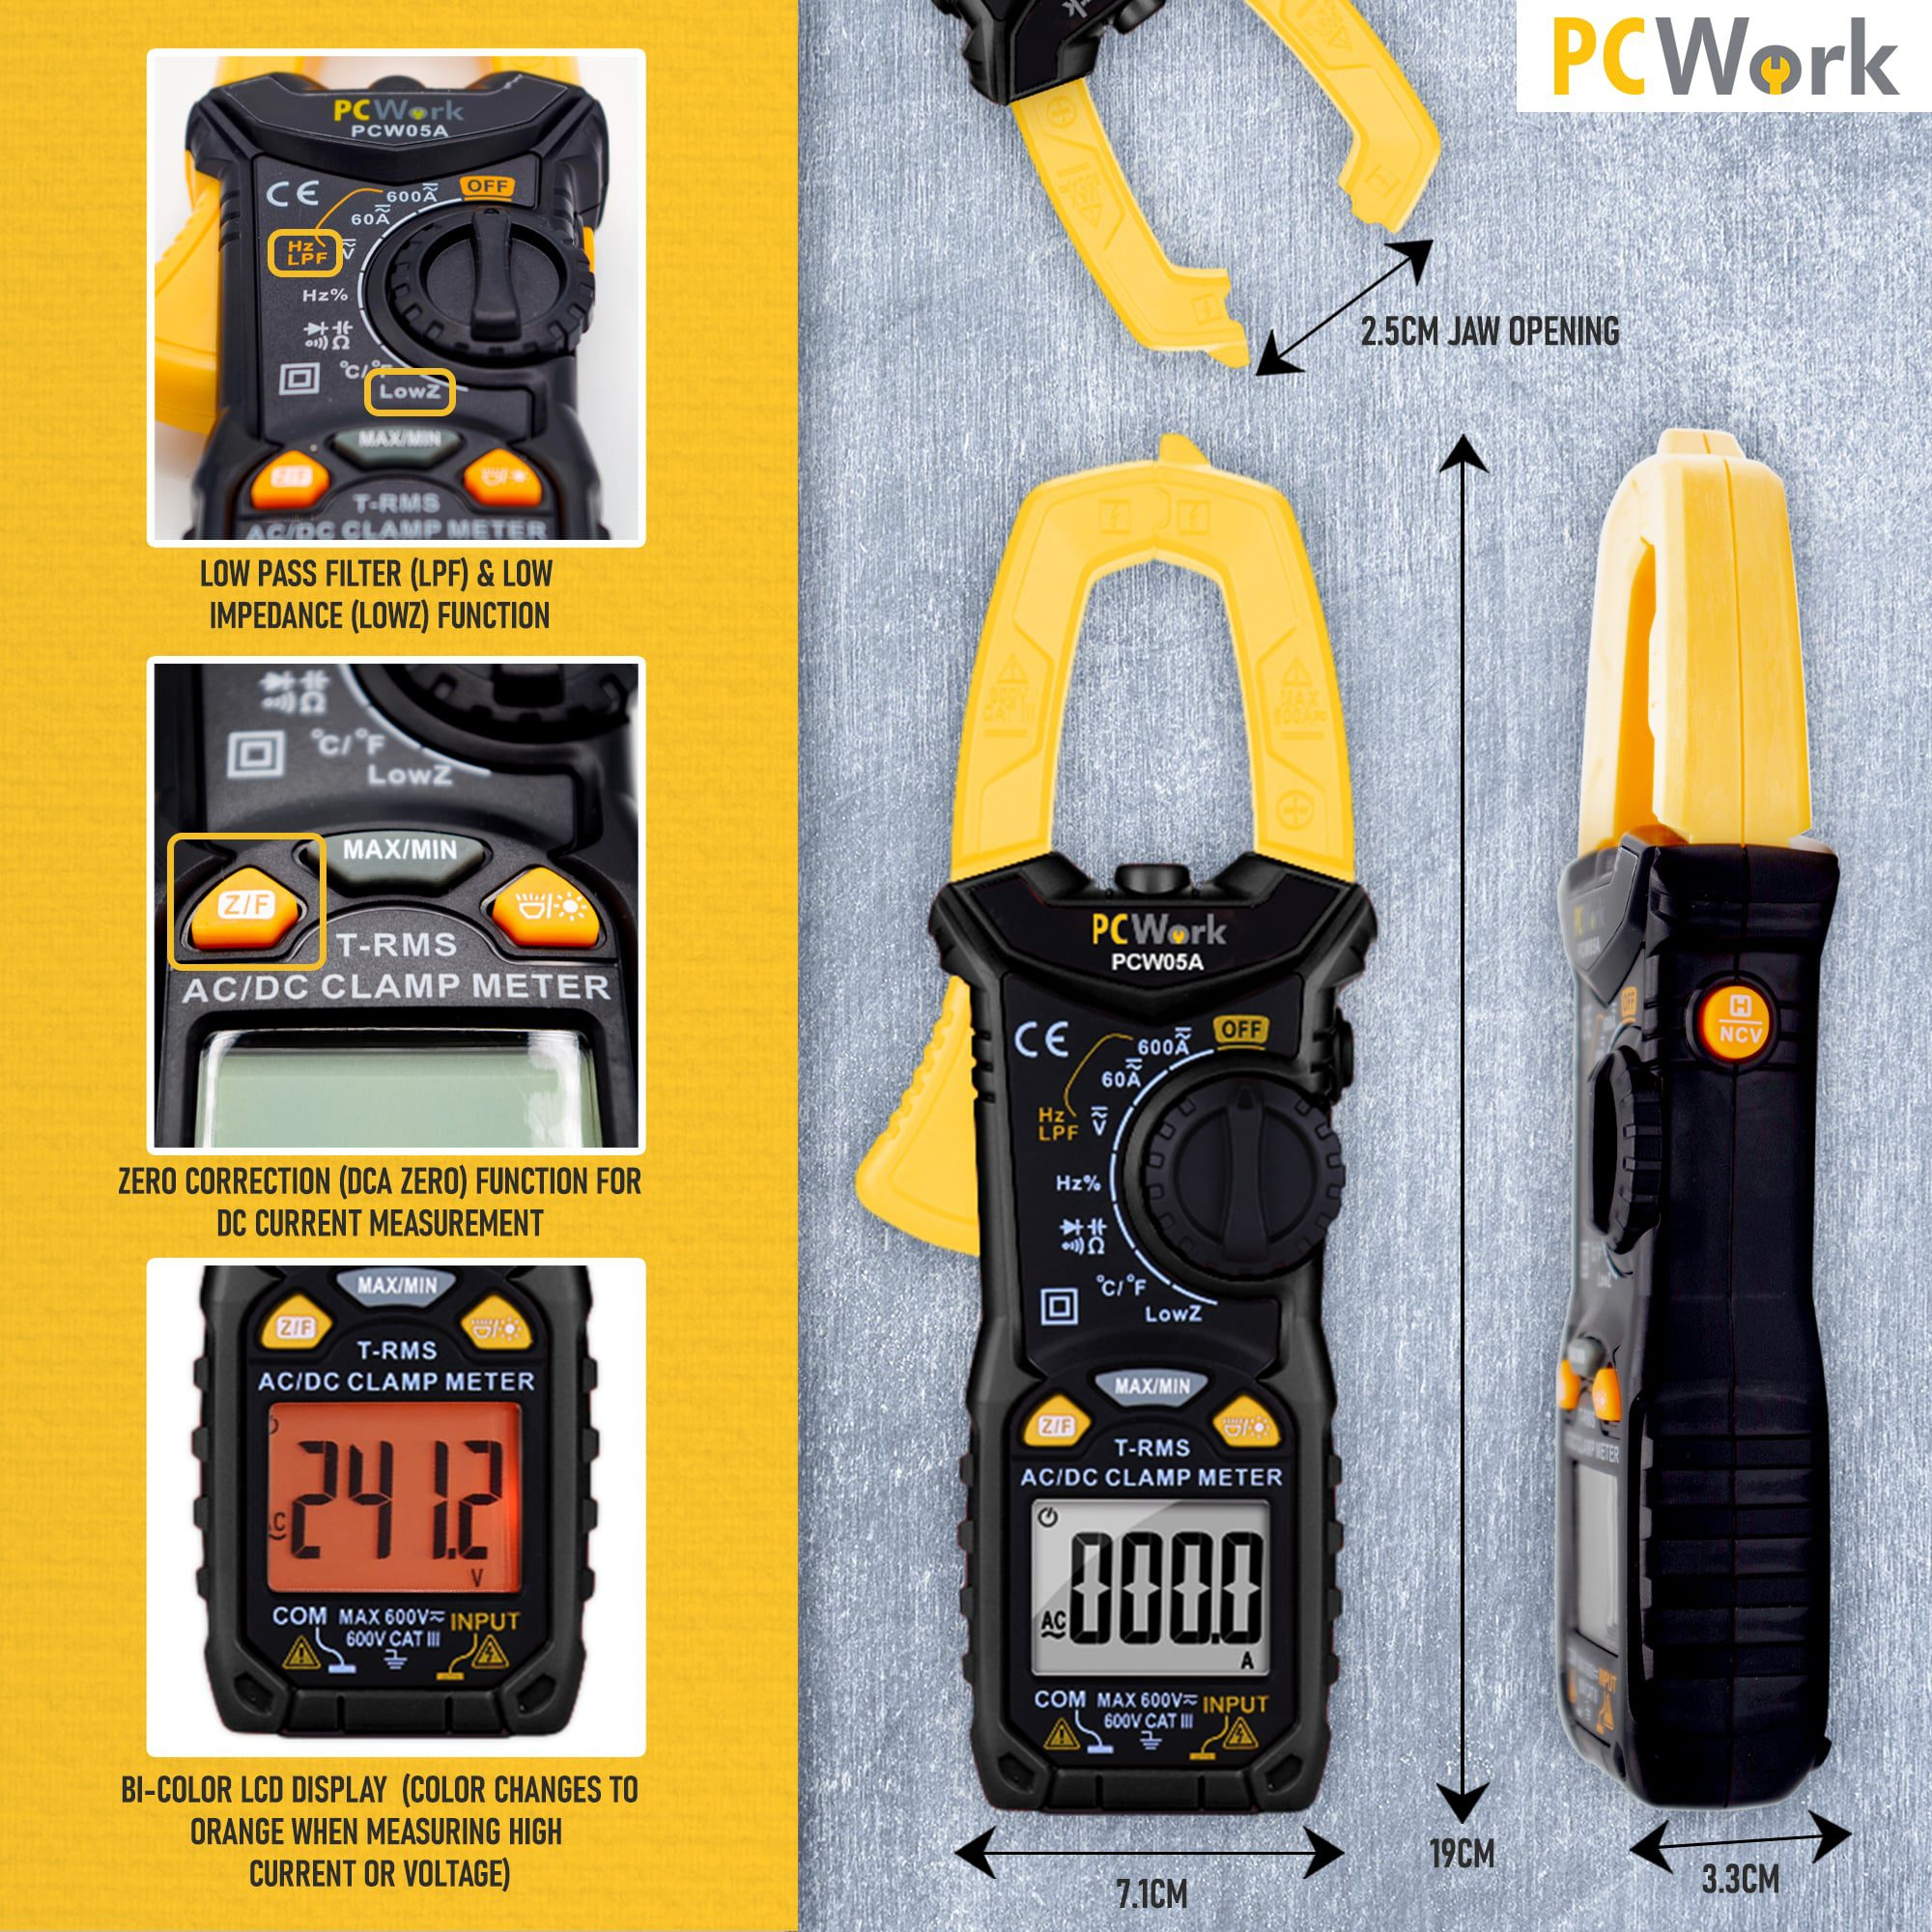 pcw05a digital clamp meter advanced features